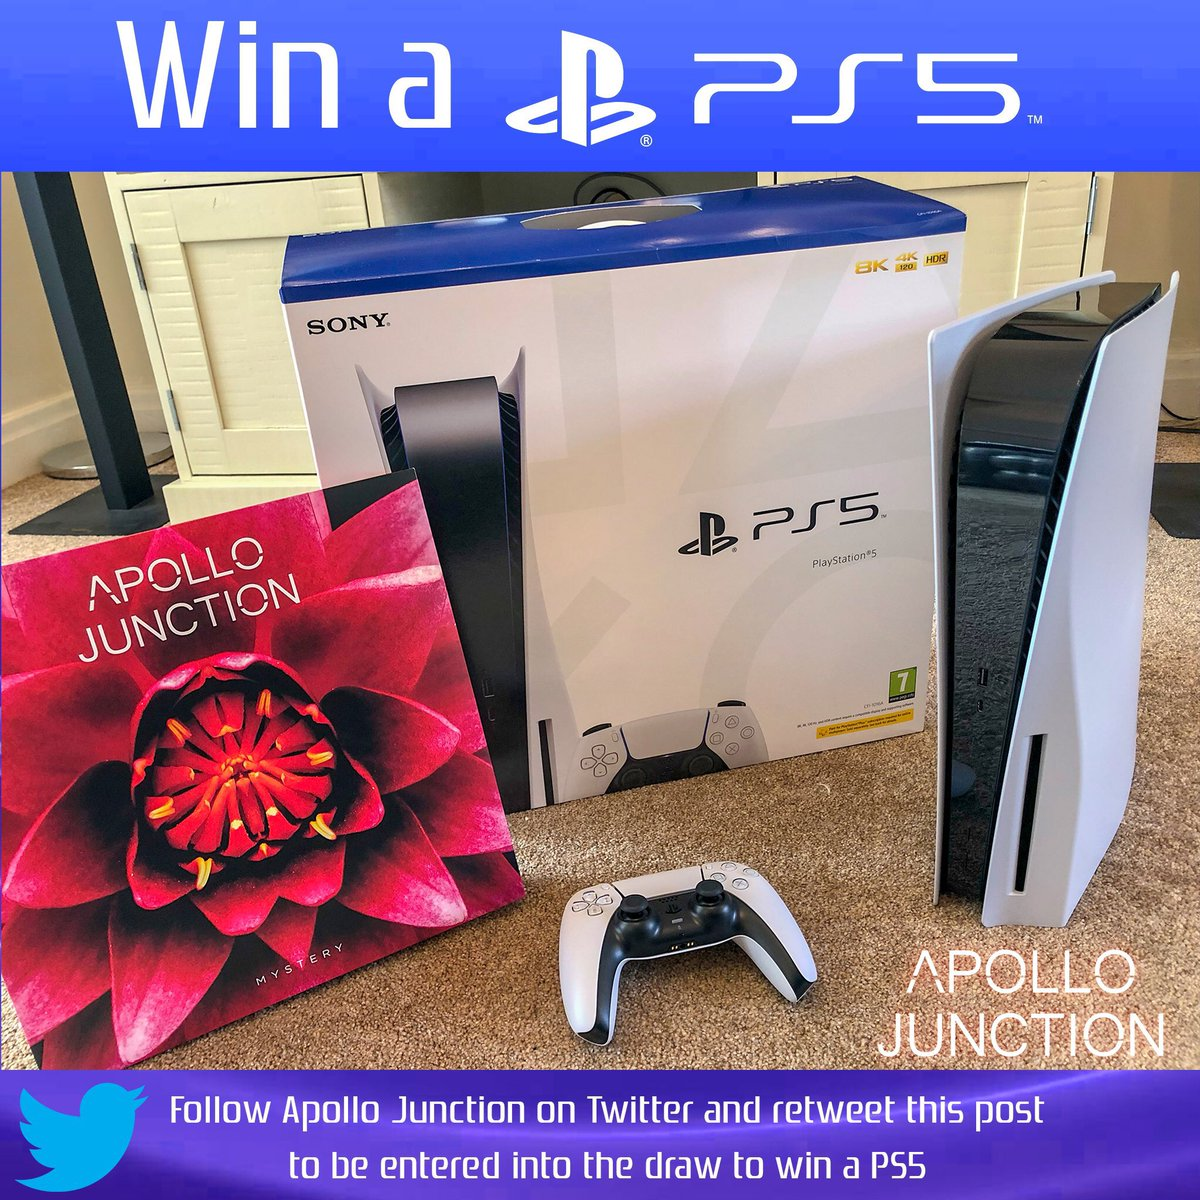 #competition #FreePS5Wednesday #ps5 We're blown away by the response to win a PS5 + our debut album on vinyl record. So - We've decided to draw the winner live  on 3rd Dec, once we're out of lockdown.  Enter now. RT/ Follow & give us a listen if you like 🙌🎵#win